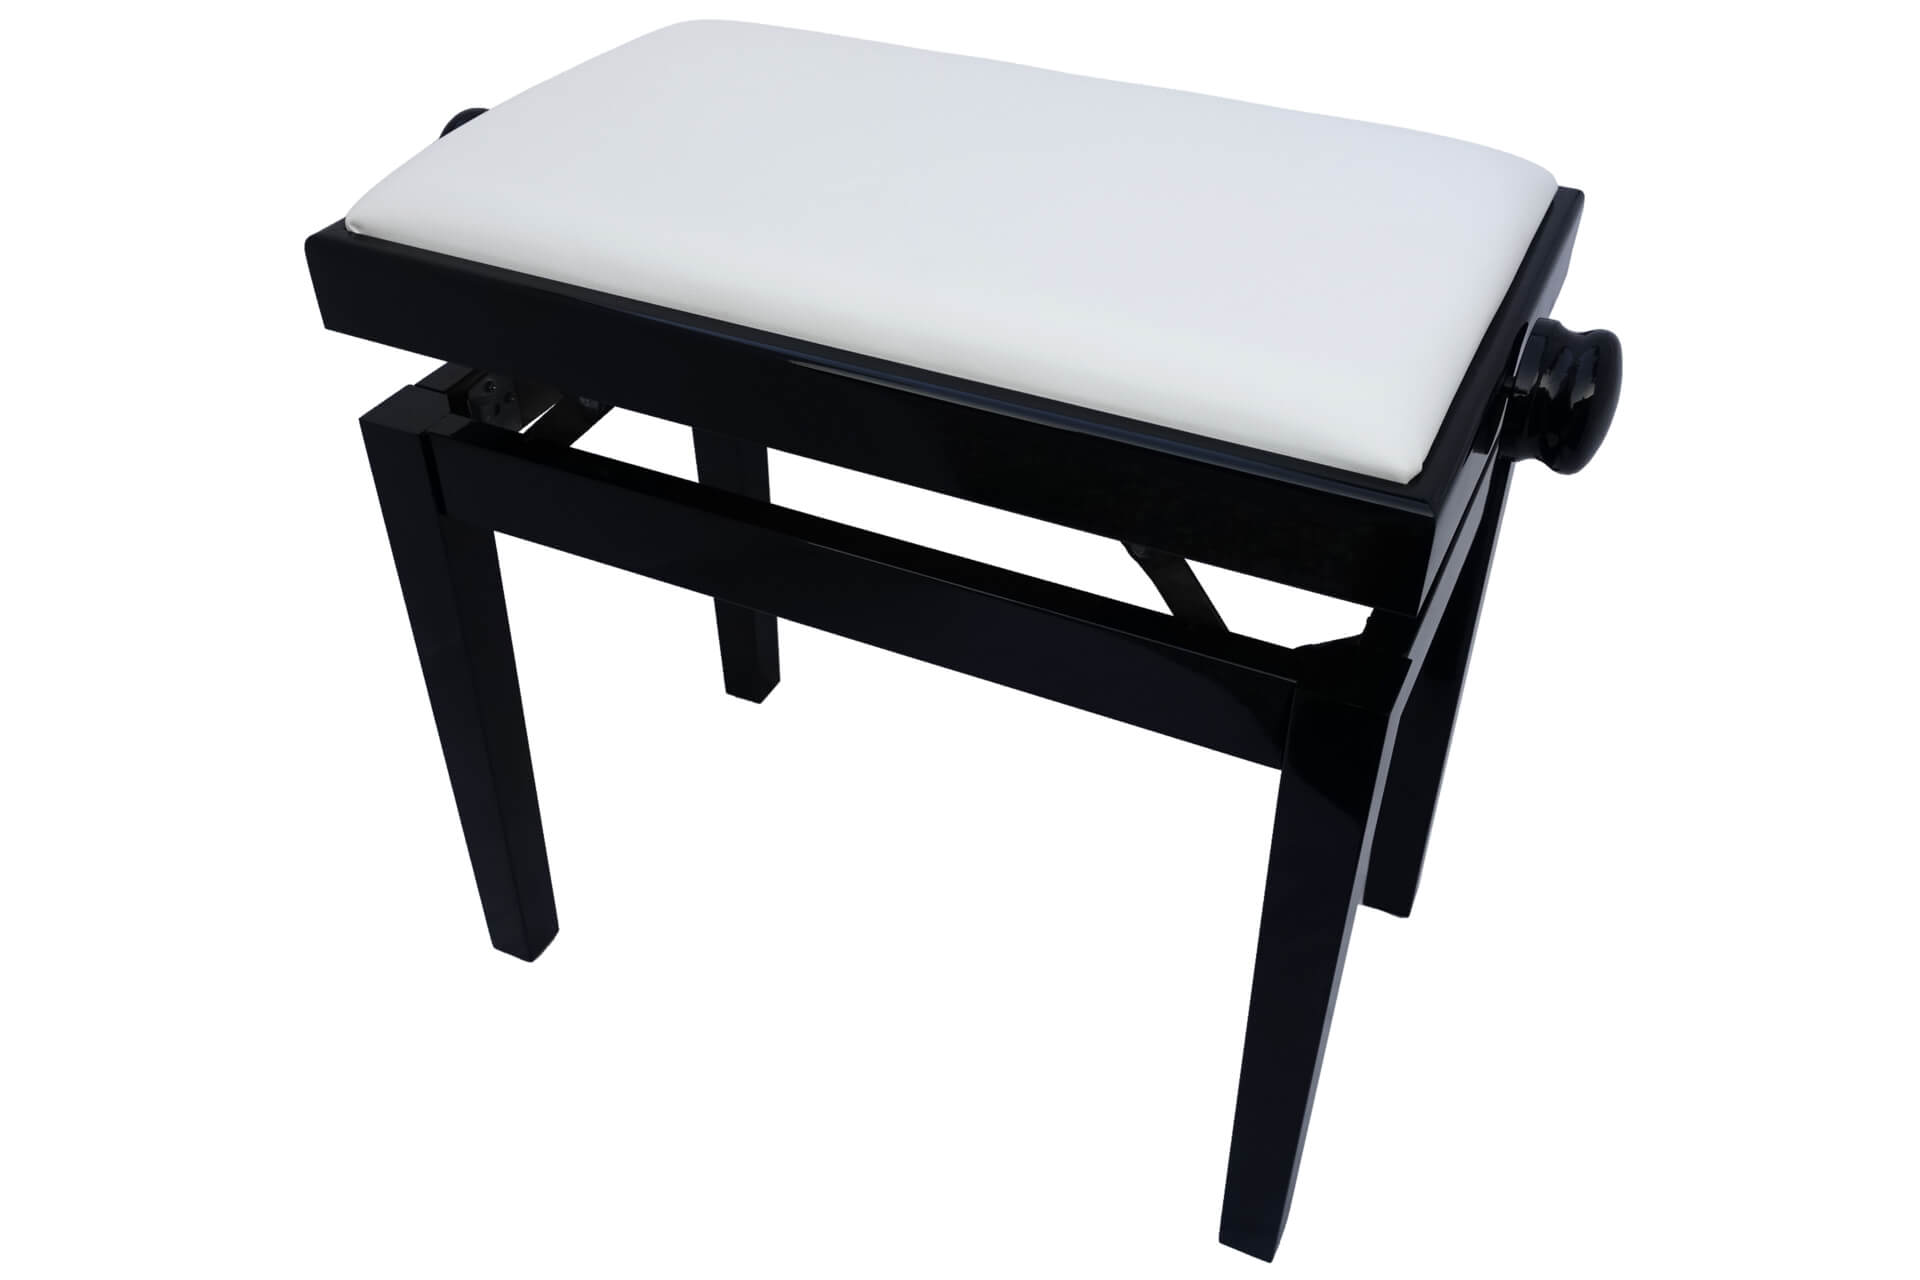 Pleasant Small Bench For Piano Adjustable In Height Rossini Real Cjindustries Chair Design For Home Cjindustriesco